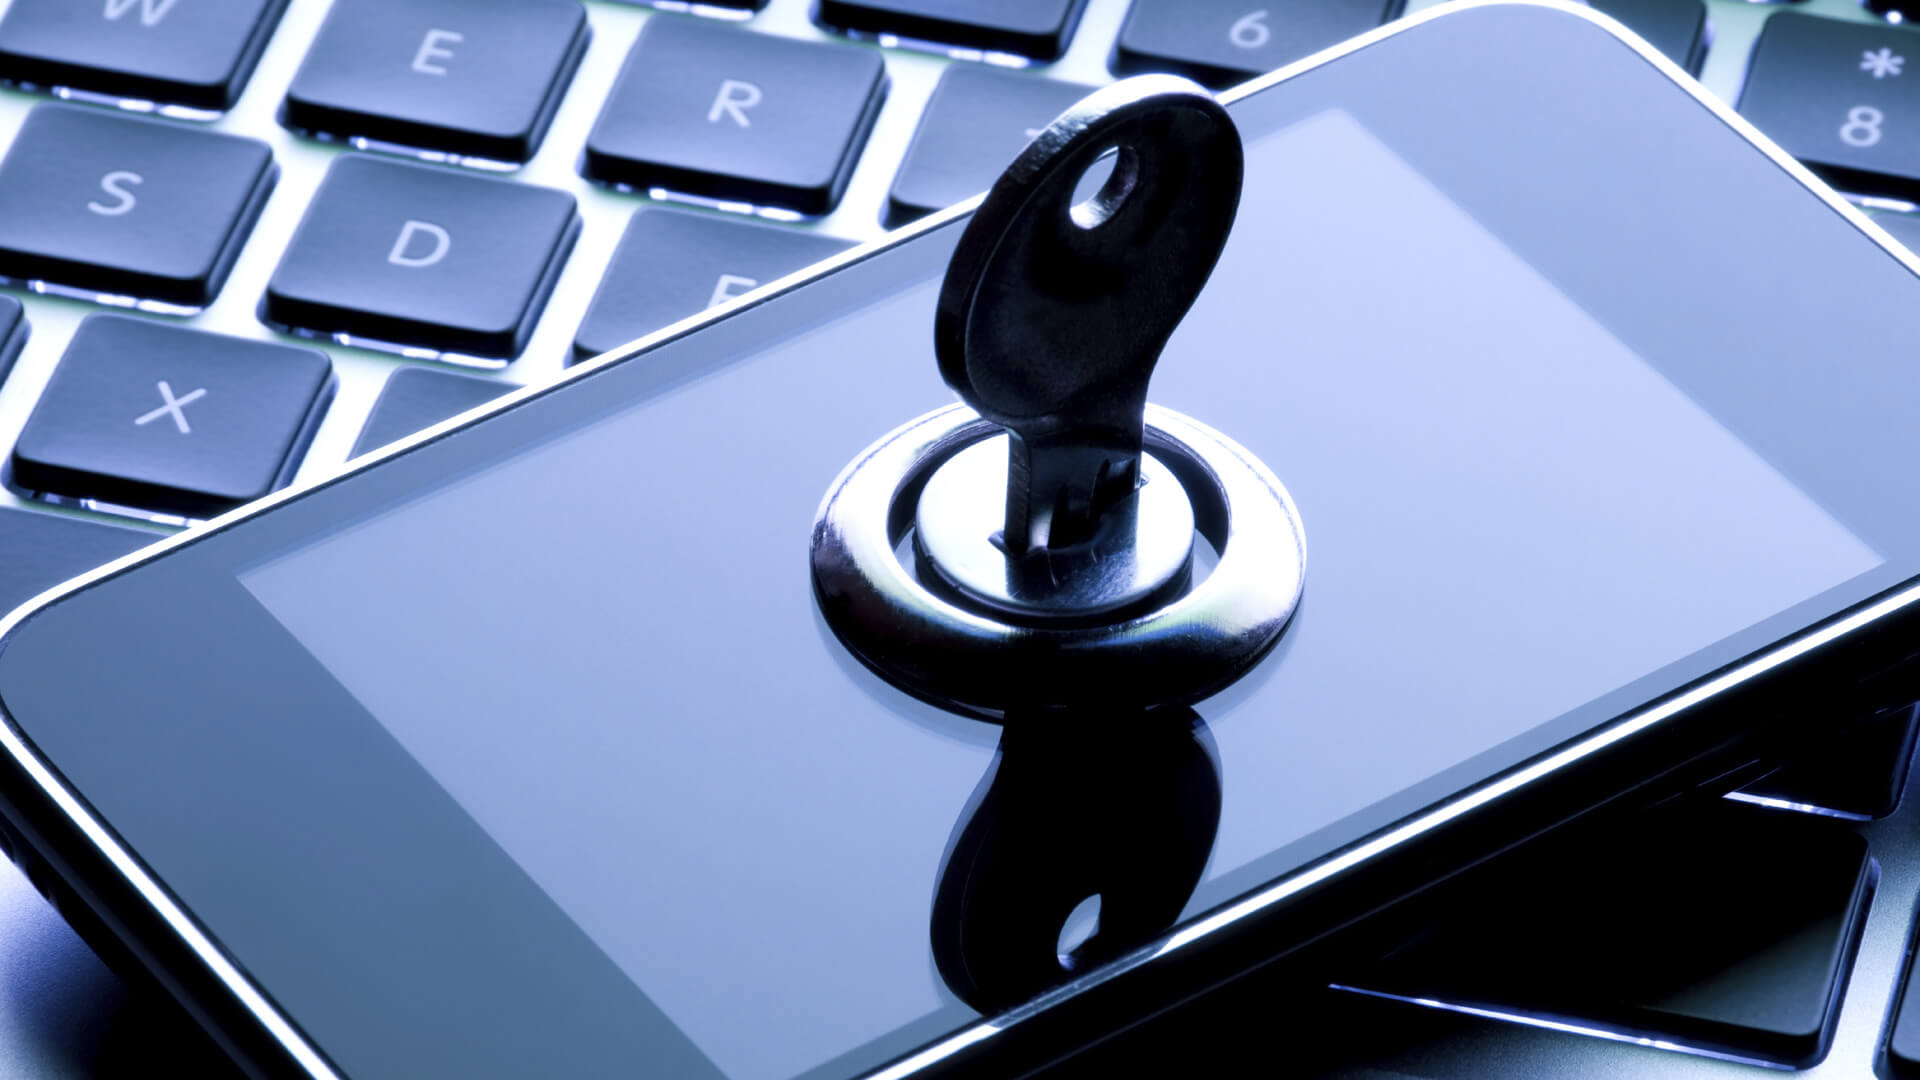 10 Tips to Ensure Security of Your Mobile Apps